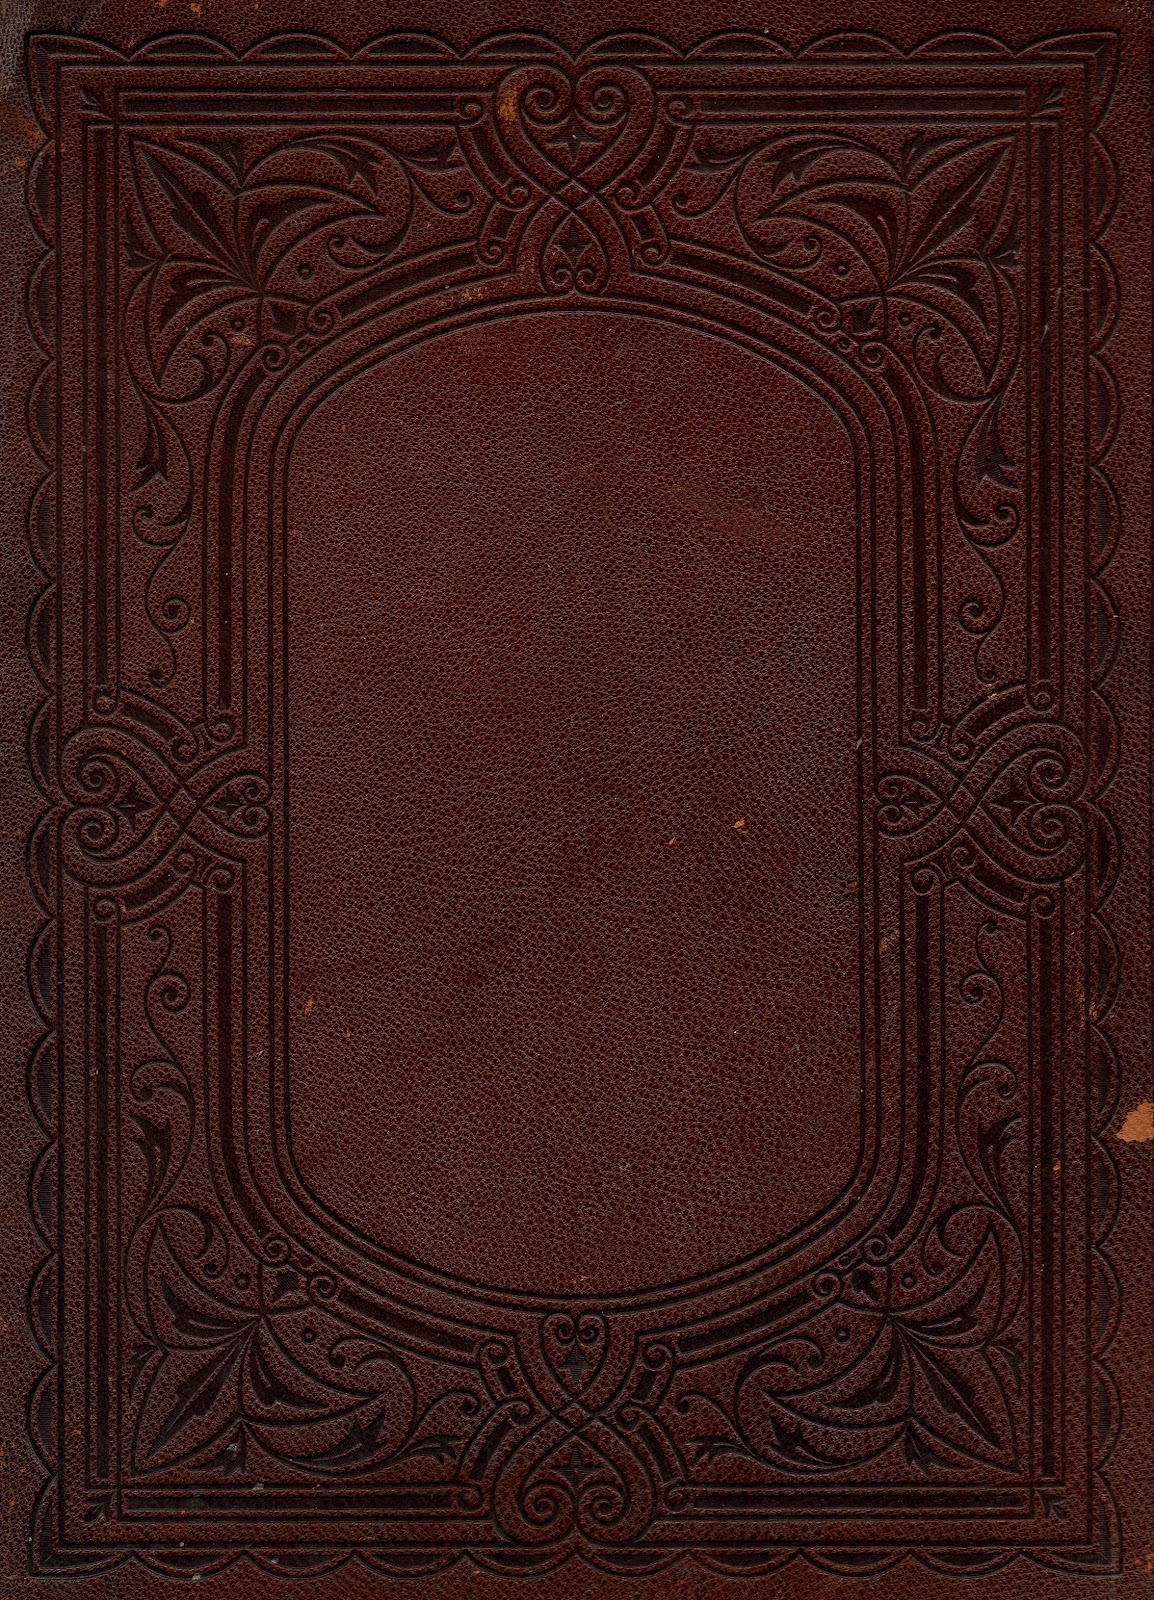 Vintage Book Cover Background ~ Leaping frog designs antique book board frame free png image